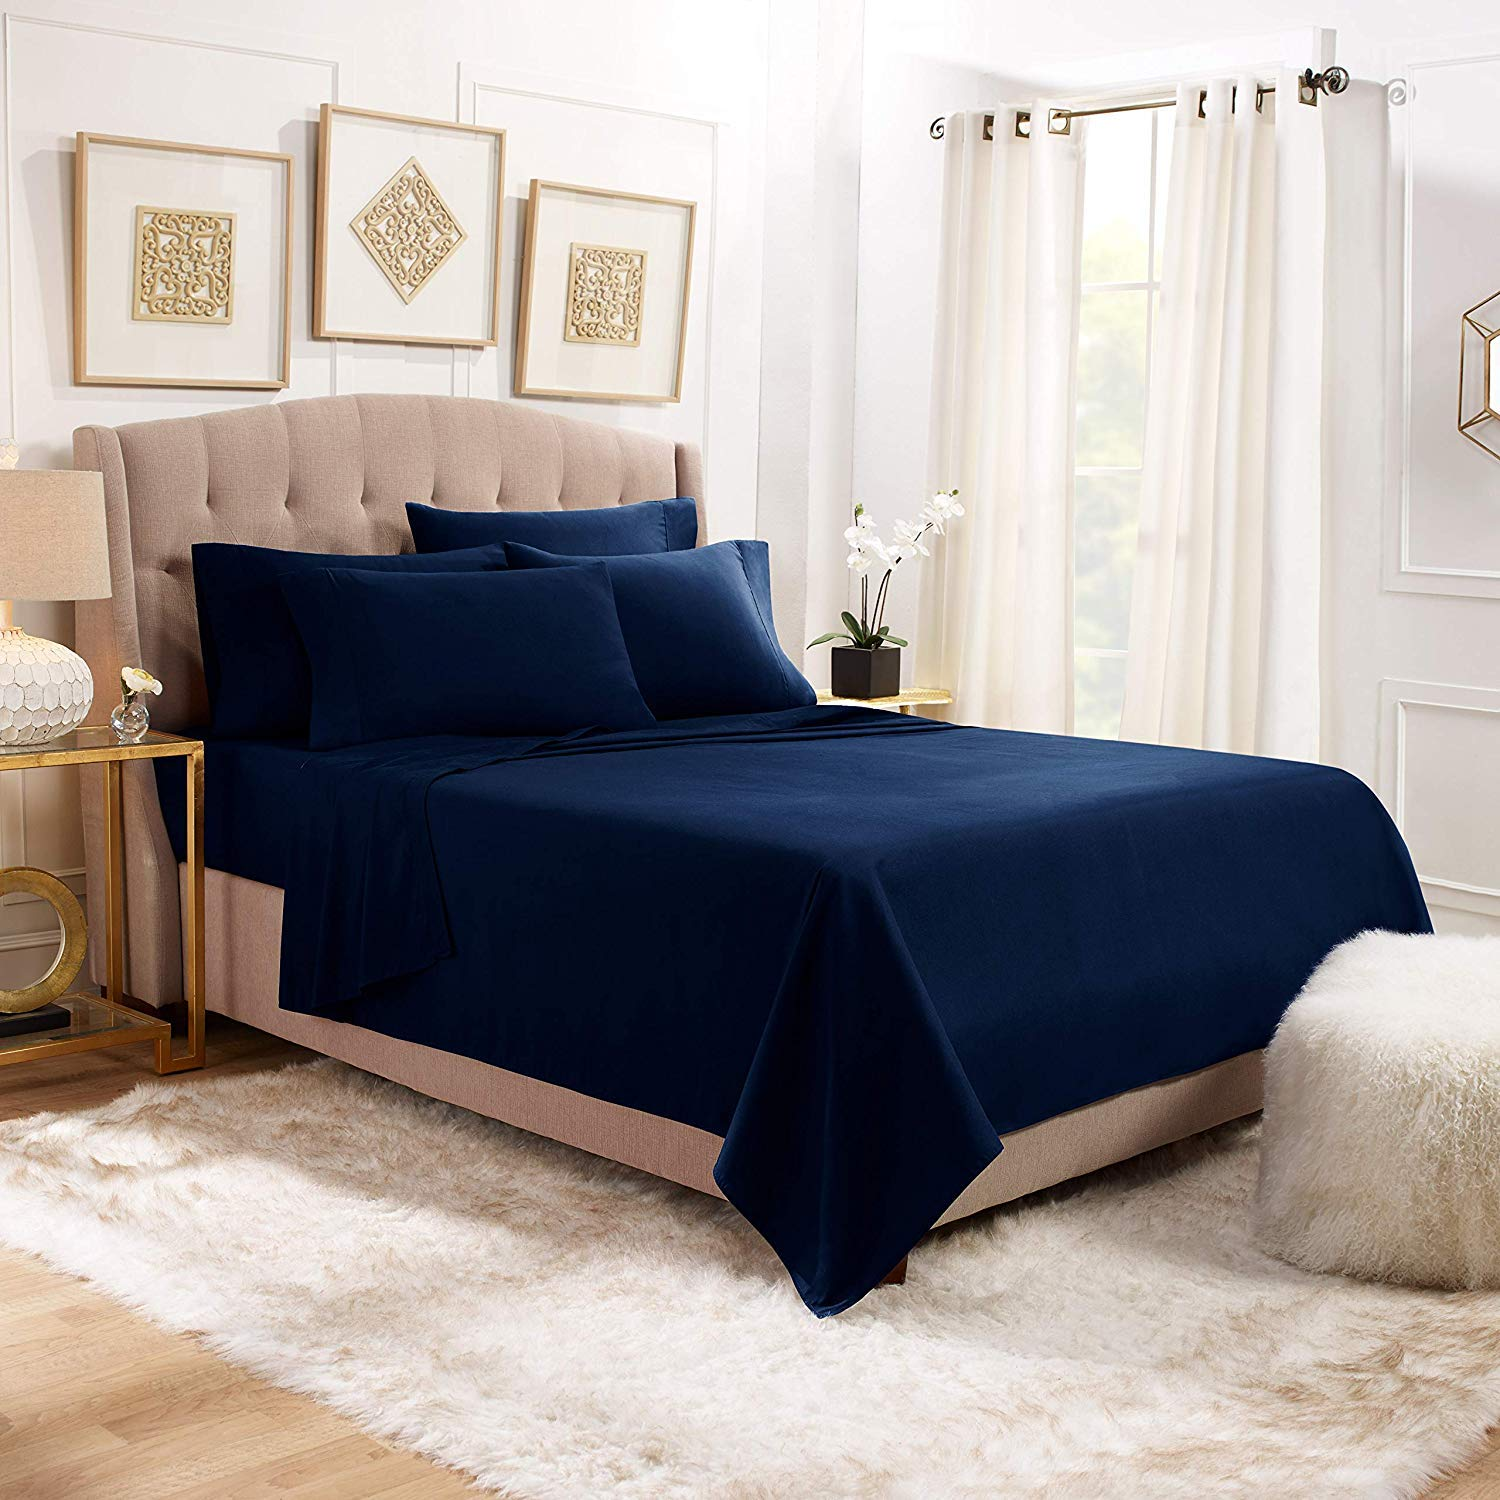 Hotel Collection 4 pc Sheet Set Long Stapple, 1200 TC 100% Pure Natural Cotton Sateen Weave, Hotel Linen Bedding Sets,10-11 inch Deep Pocket, (California King Color Navy Blue)